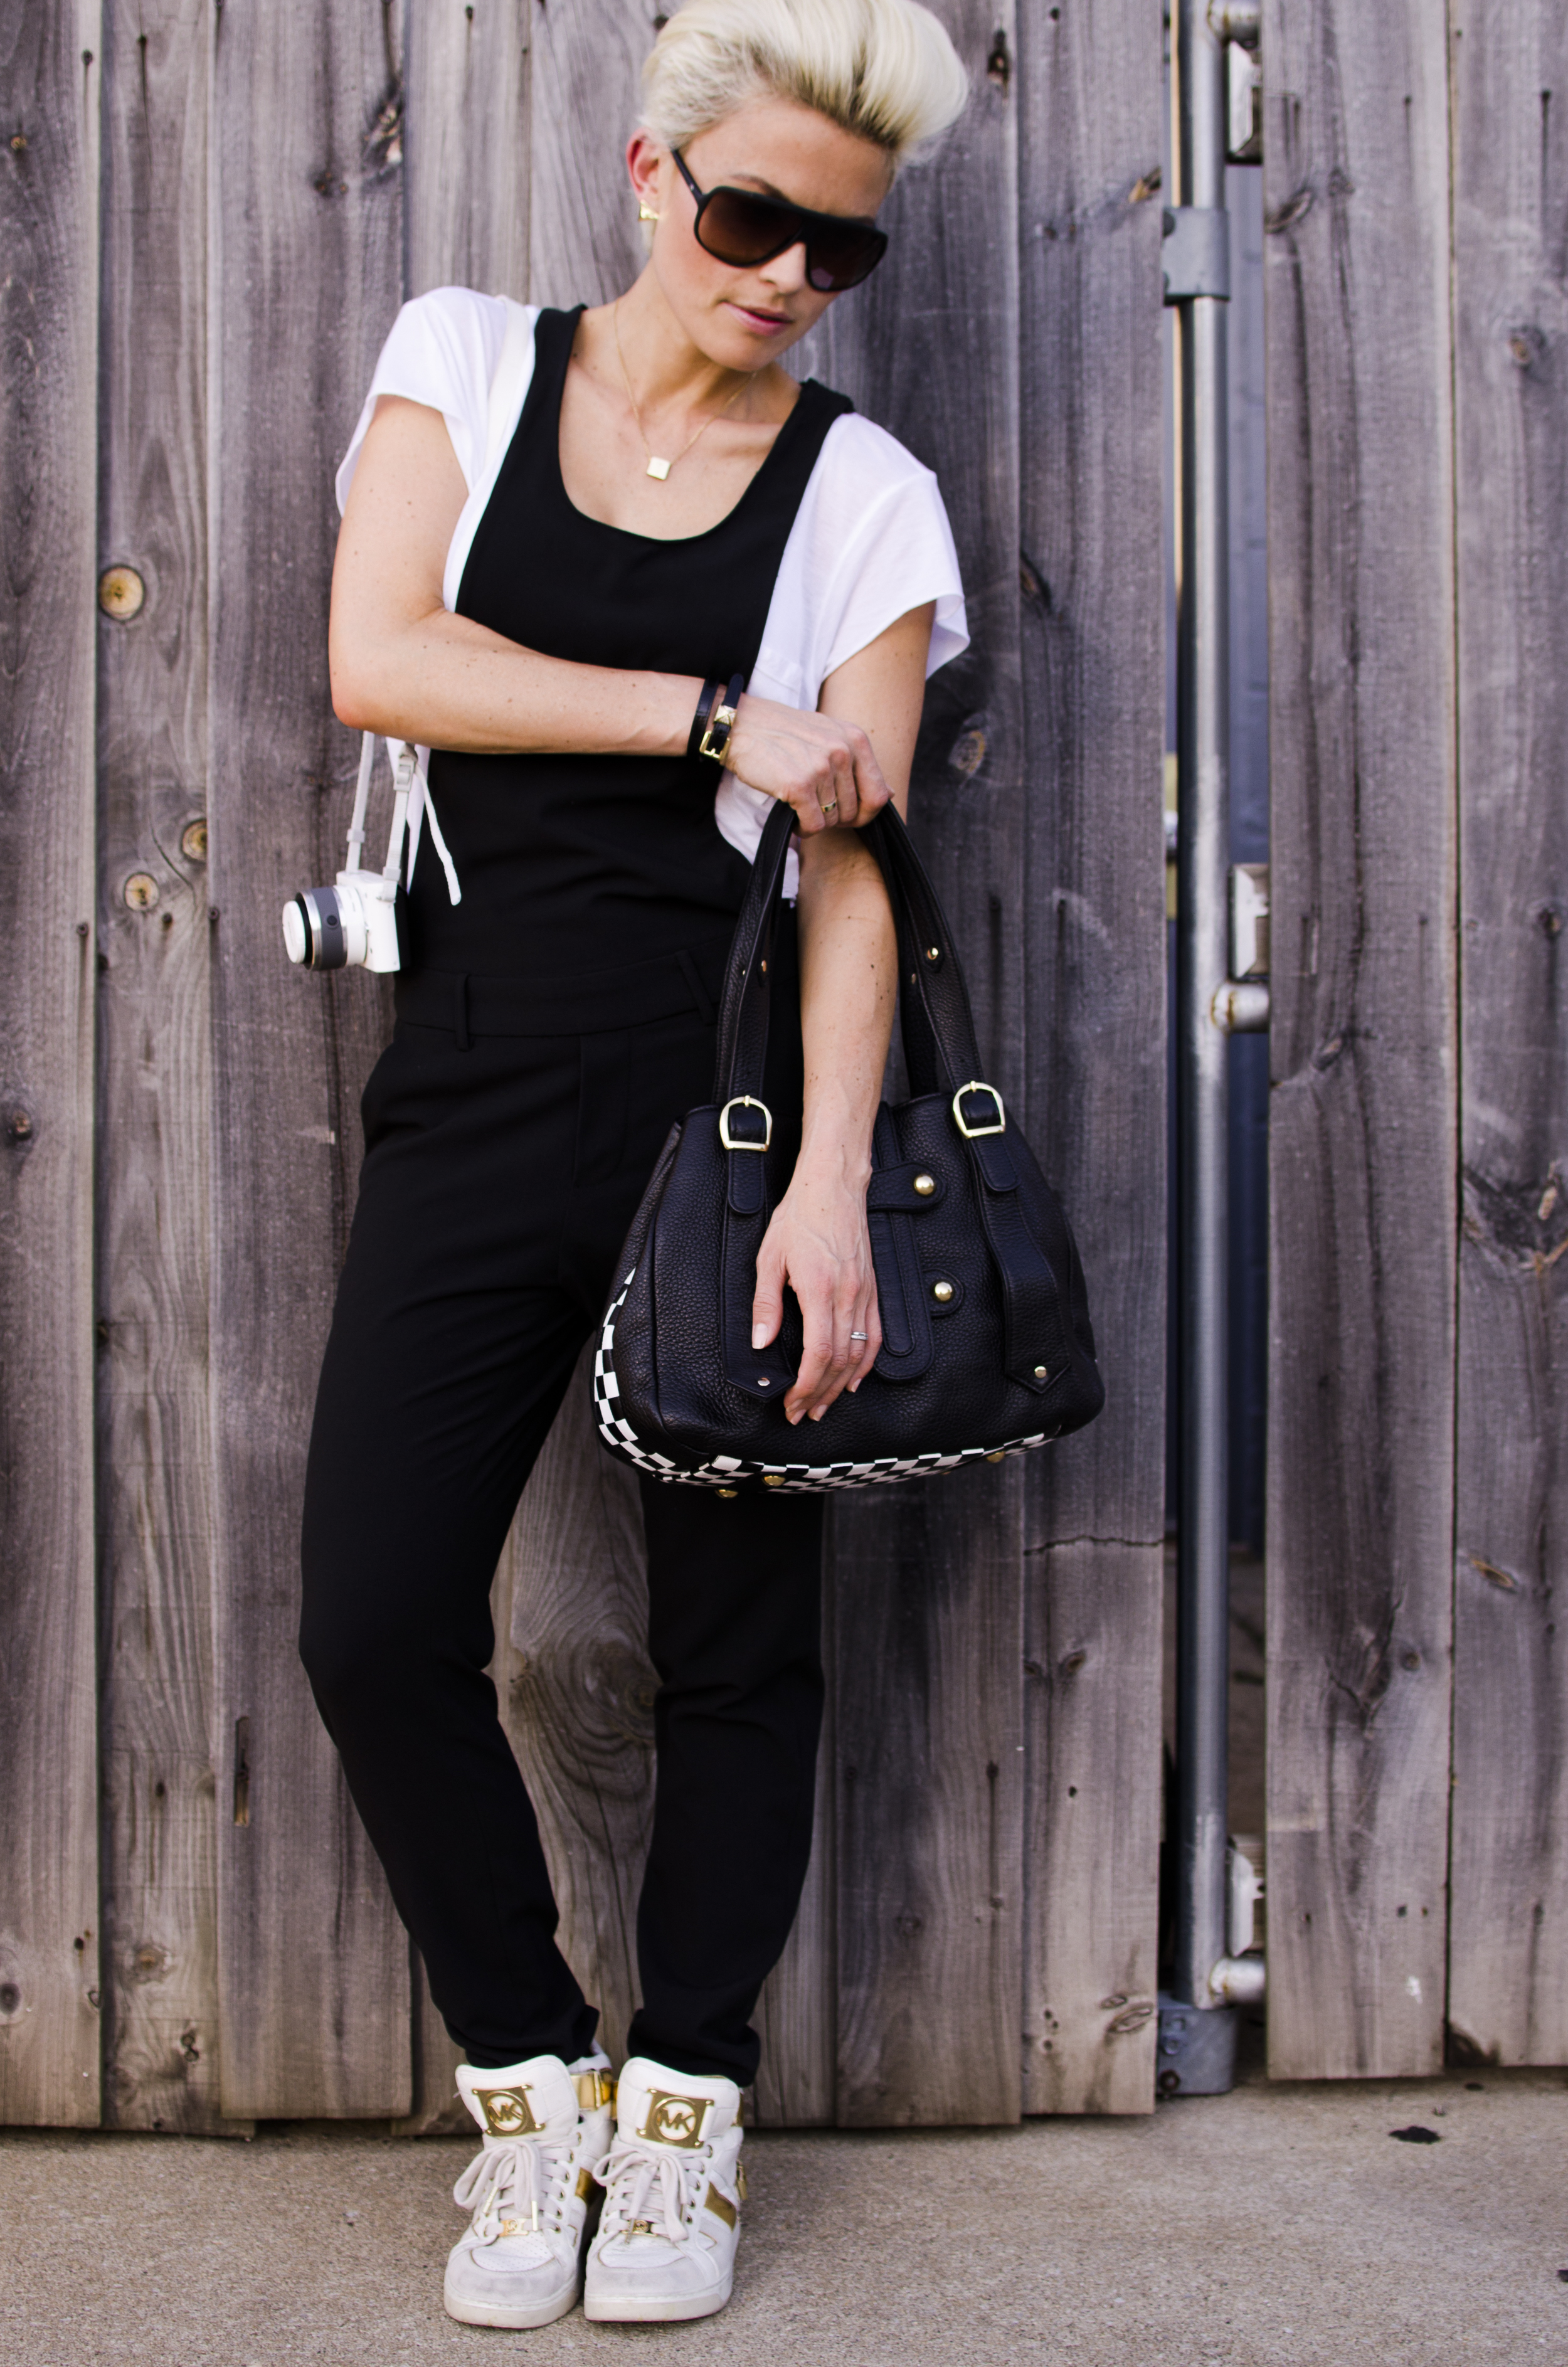 Photos by  @otbp1973     Overalls from ASOS/ T Shirt from William Rast/ Shoes and bracelet from Michael Kors/ Sunglasses from  Gatorz Vizion / Bag from  Tracy Zych / Earrings from  Amy Kirchen Boutique / Necklace from  Aquinnah Jewelry